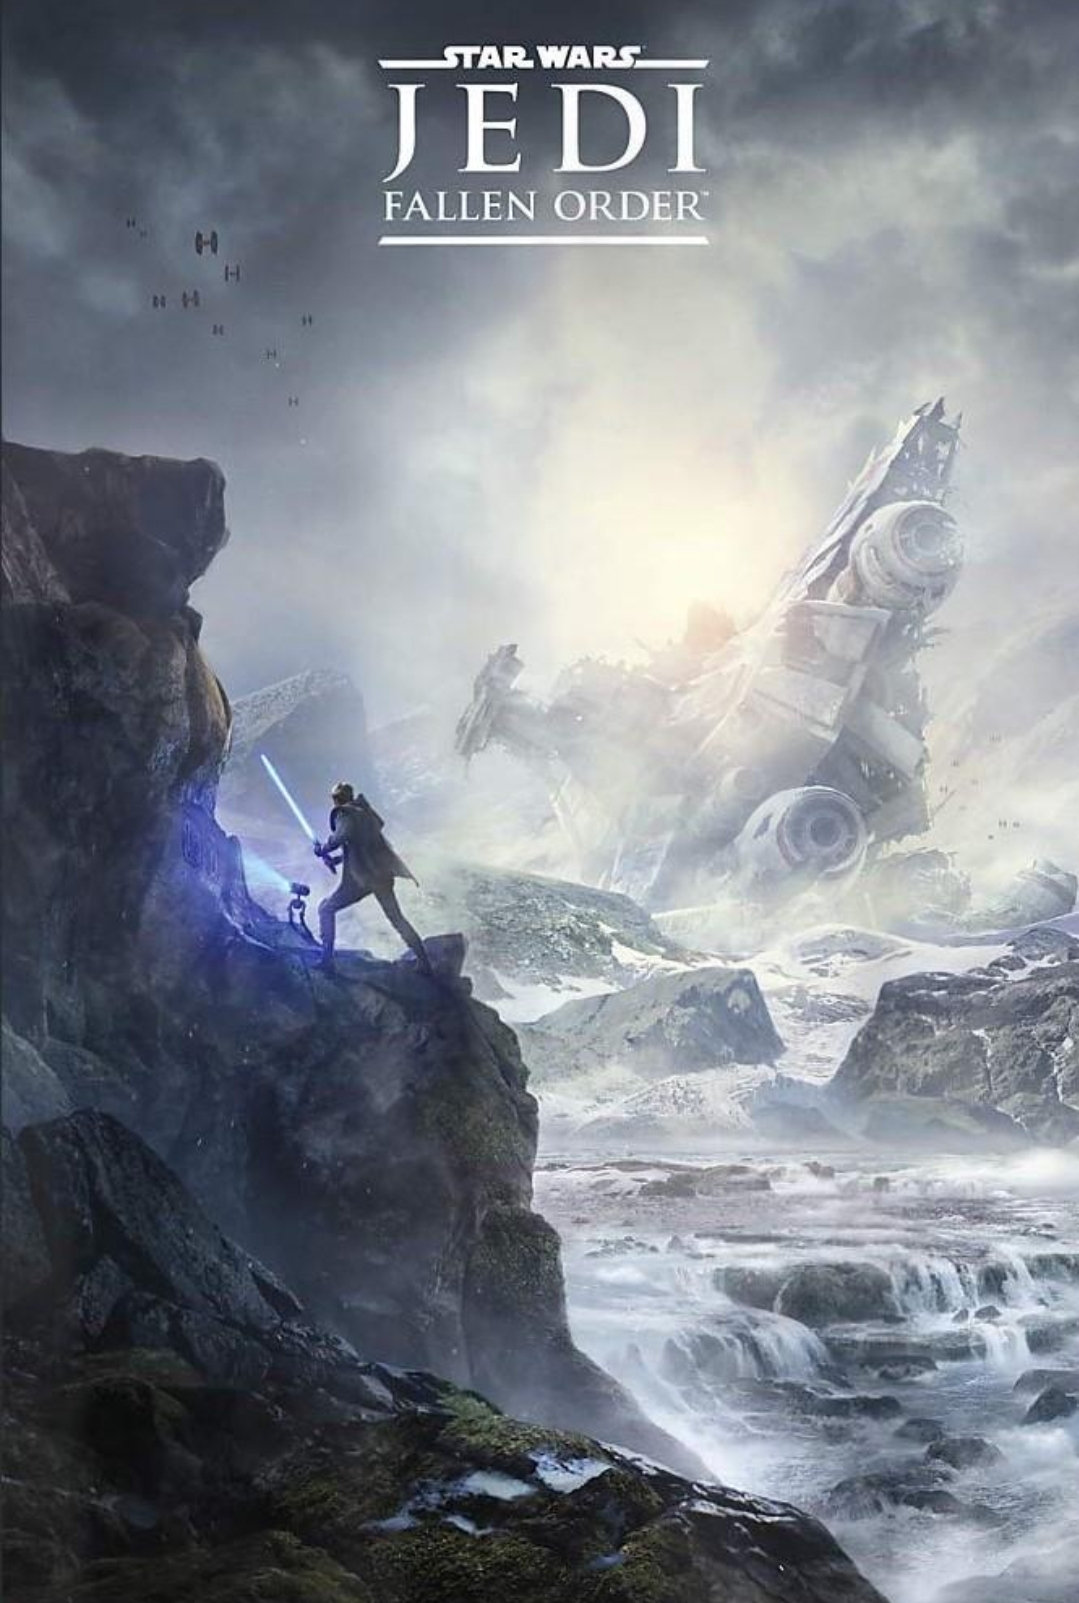 star wars jedi fallen order poster ps4 xbox one pc